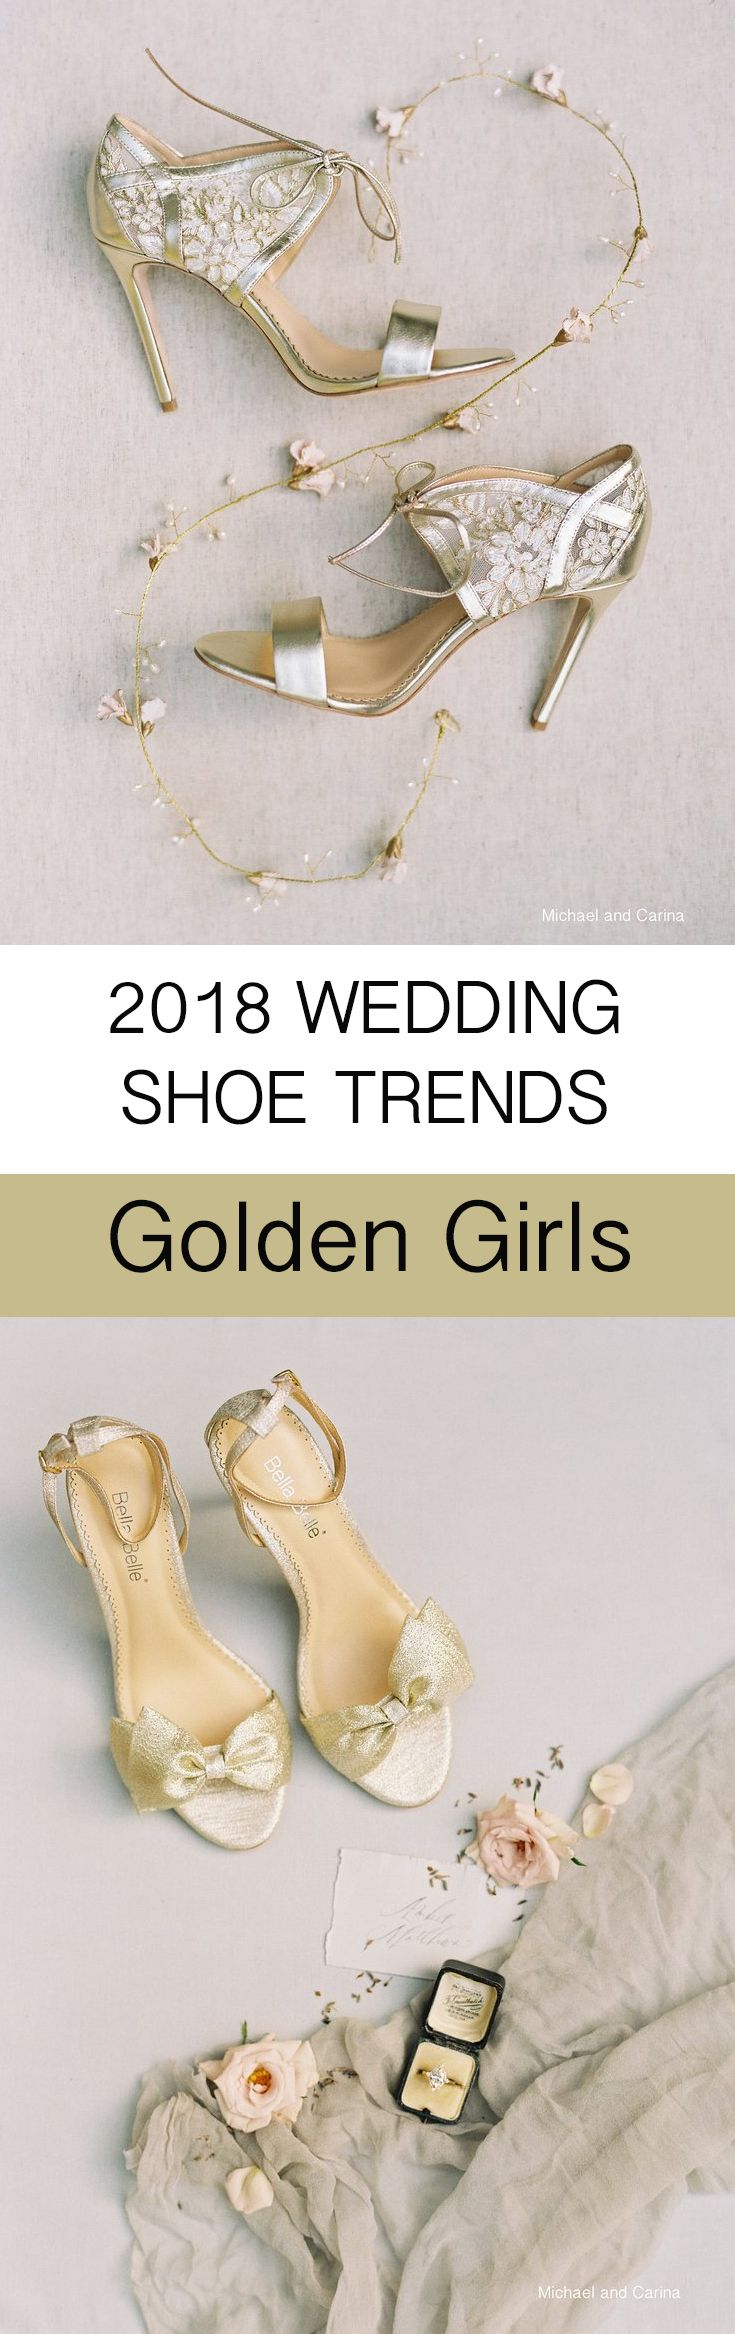 2018 Wedding Shoe Trends features the Golden Girls, aka the gold wedding shoe look. Be bold, different, unique but equally glamorous, classy and feminine with Bella Belle grace, featuring gold delicate lace floral details with pearl embroidery or Aubrey with a oversized gold bow at the front for a statement making effect, both comfortable with extra padding and are re-wearable for date nights and special occasions! Photography: Michael and Carina